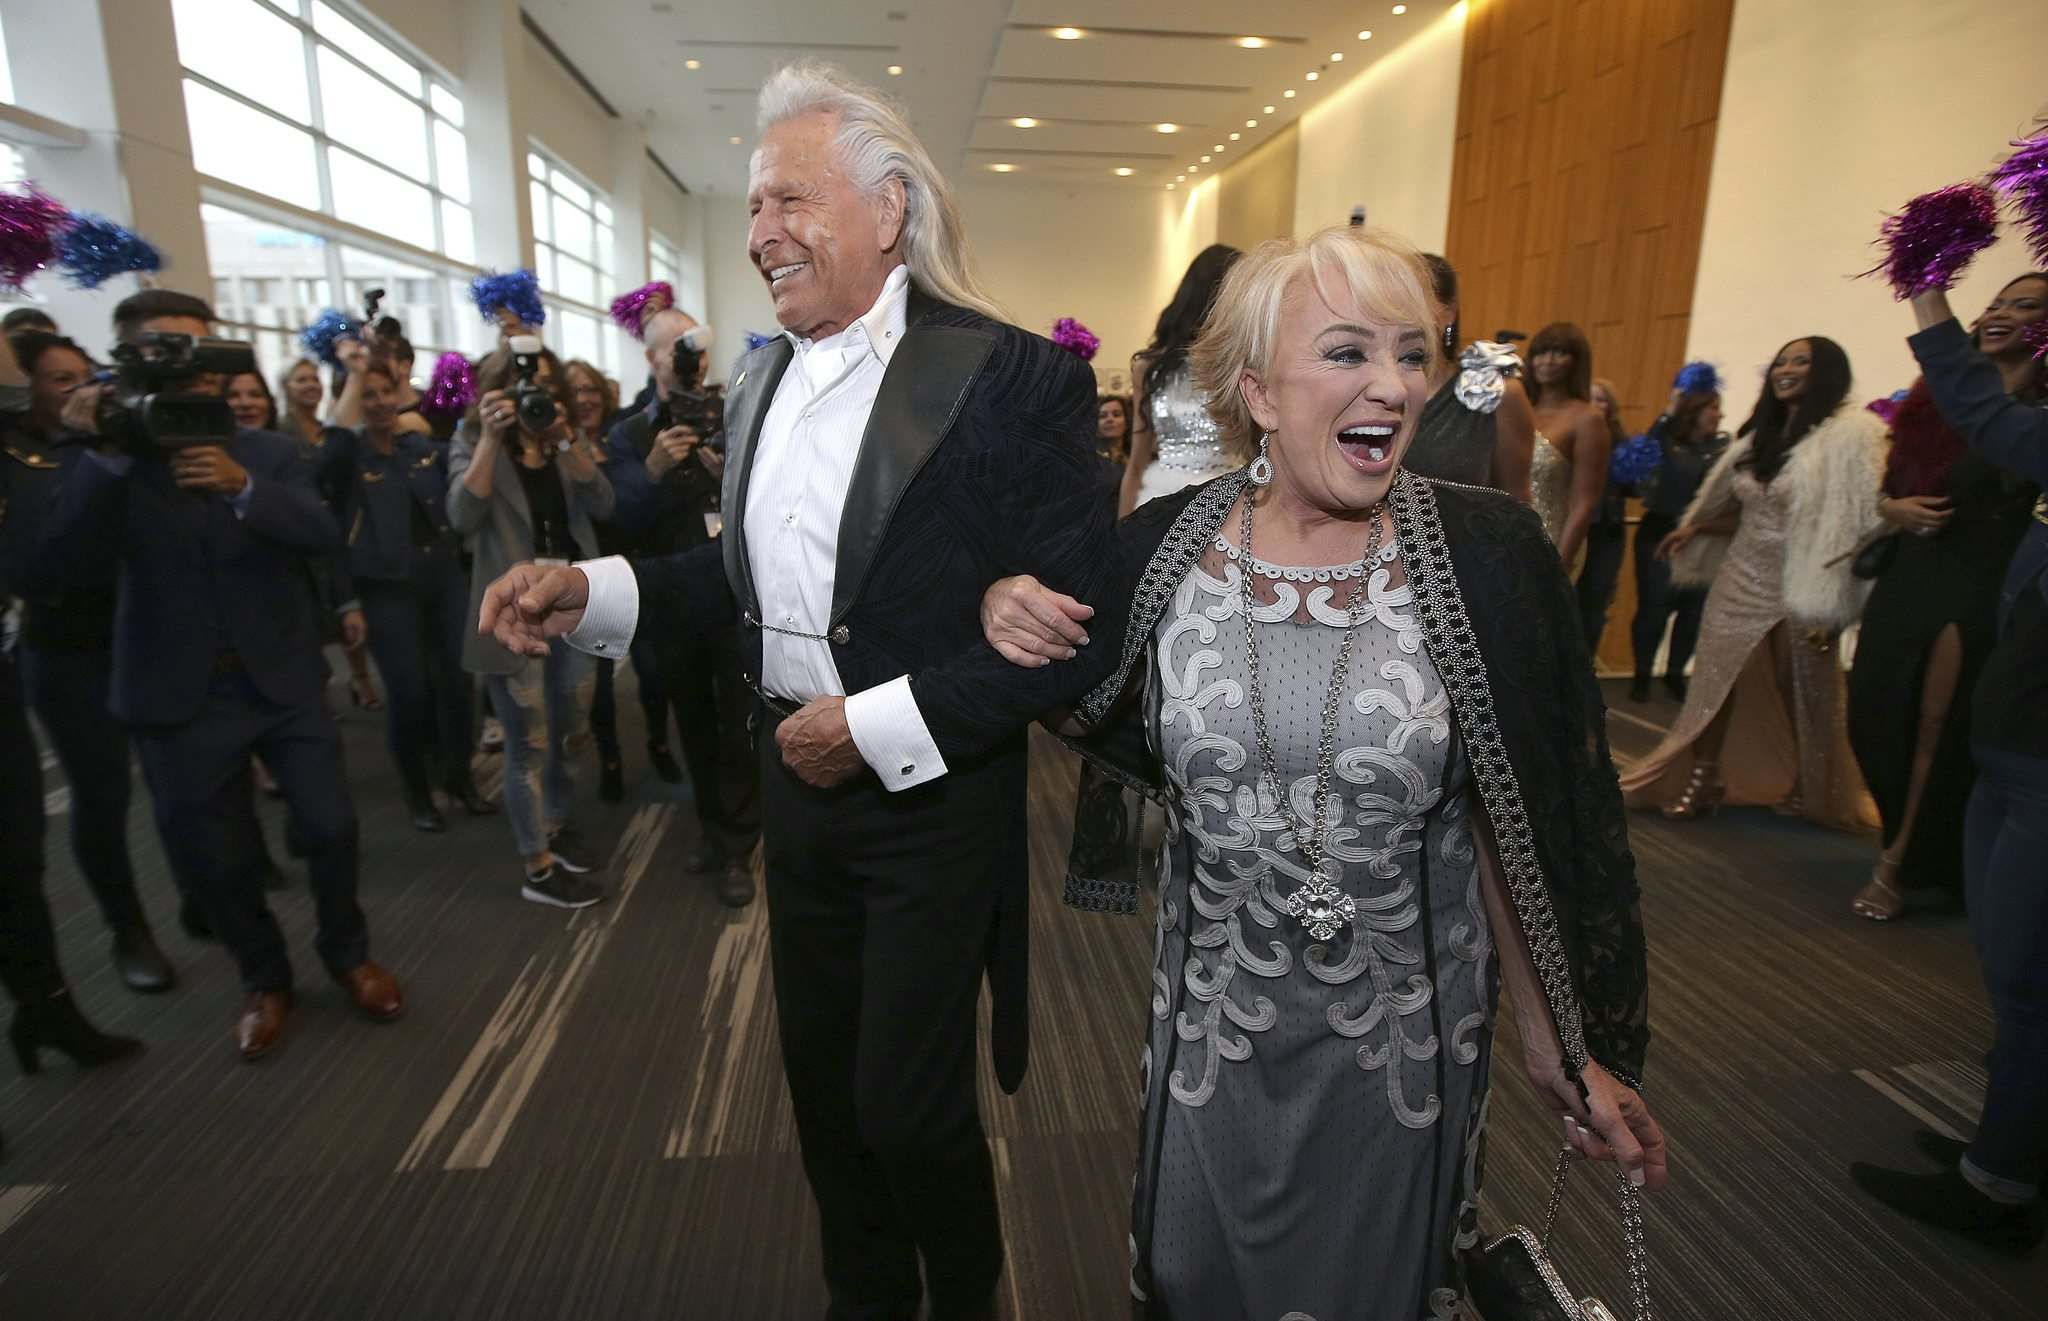 JASON HALSTEAD / WINNIPEG FREE PRESS</p><p>Peter Nygard and country singer Tanya Tucker arrive at the Nygard 50 Years in Fashion gala at the RBC Convention Centre Friday.</p>